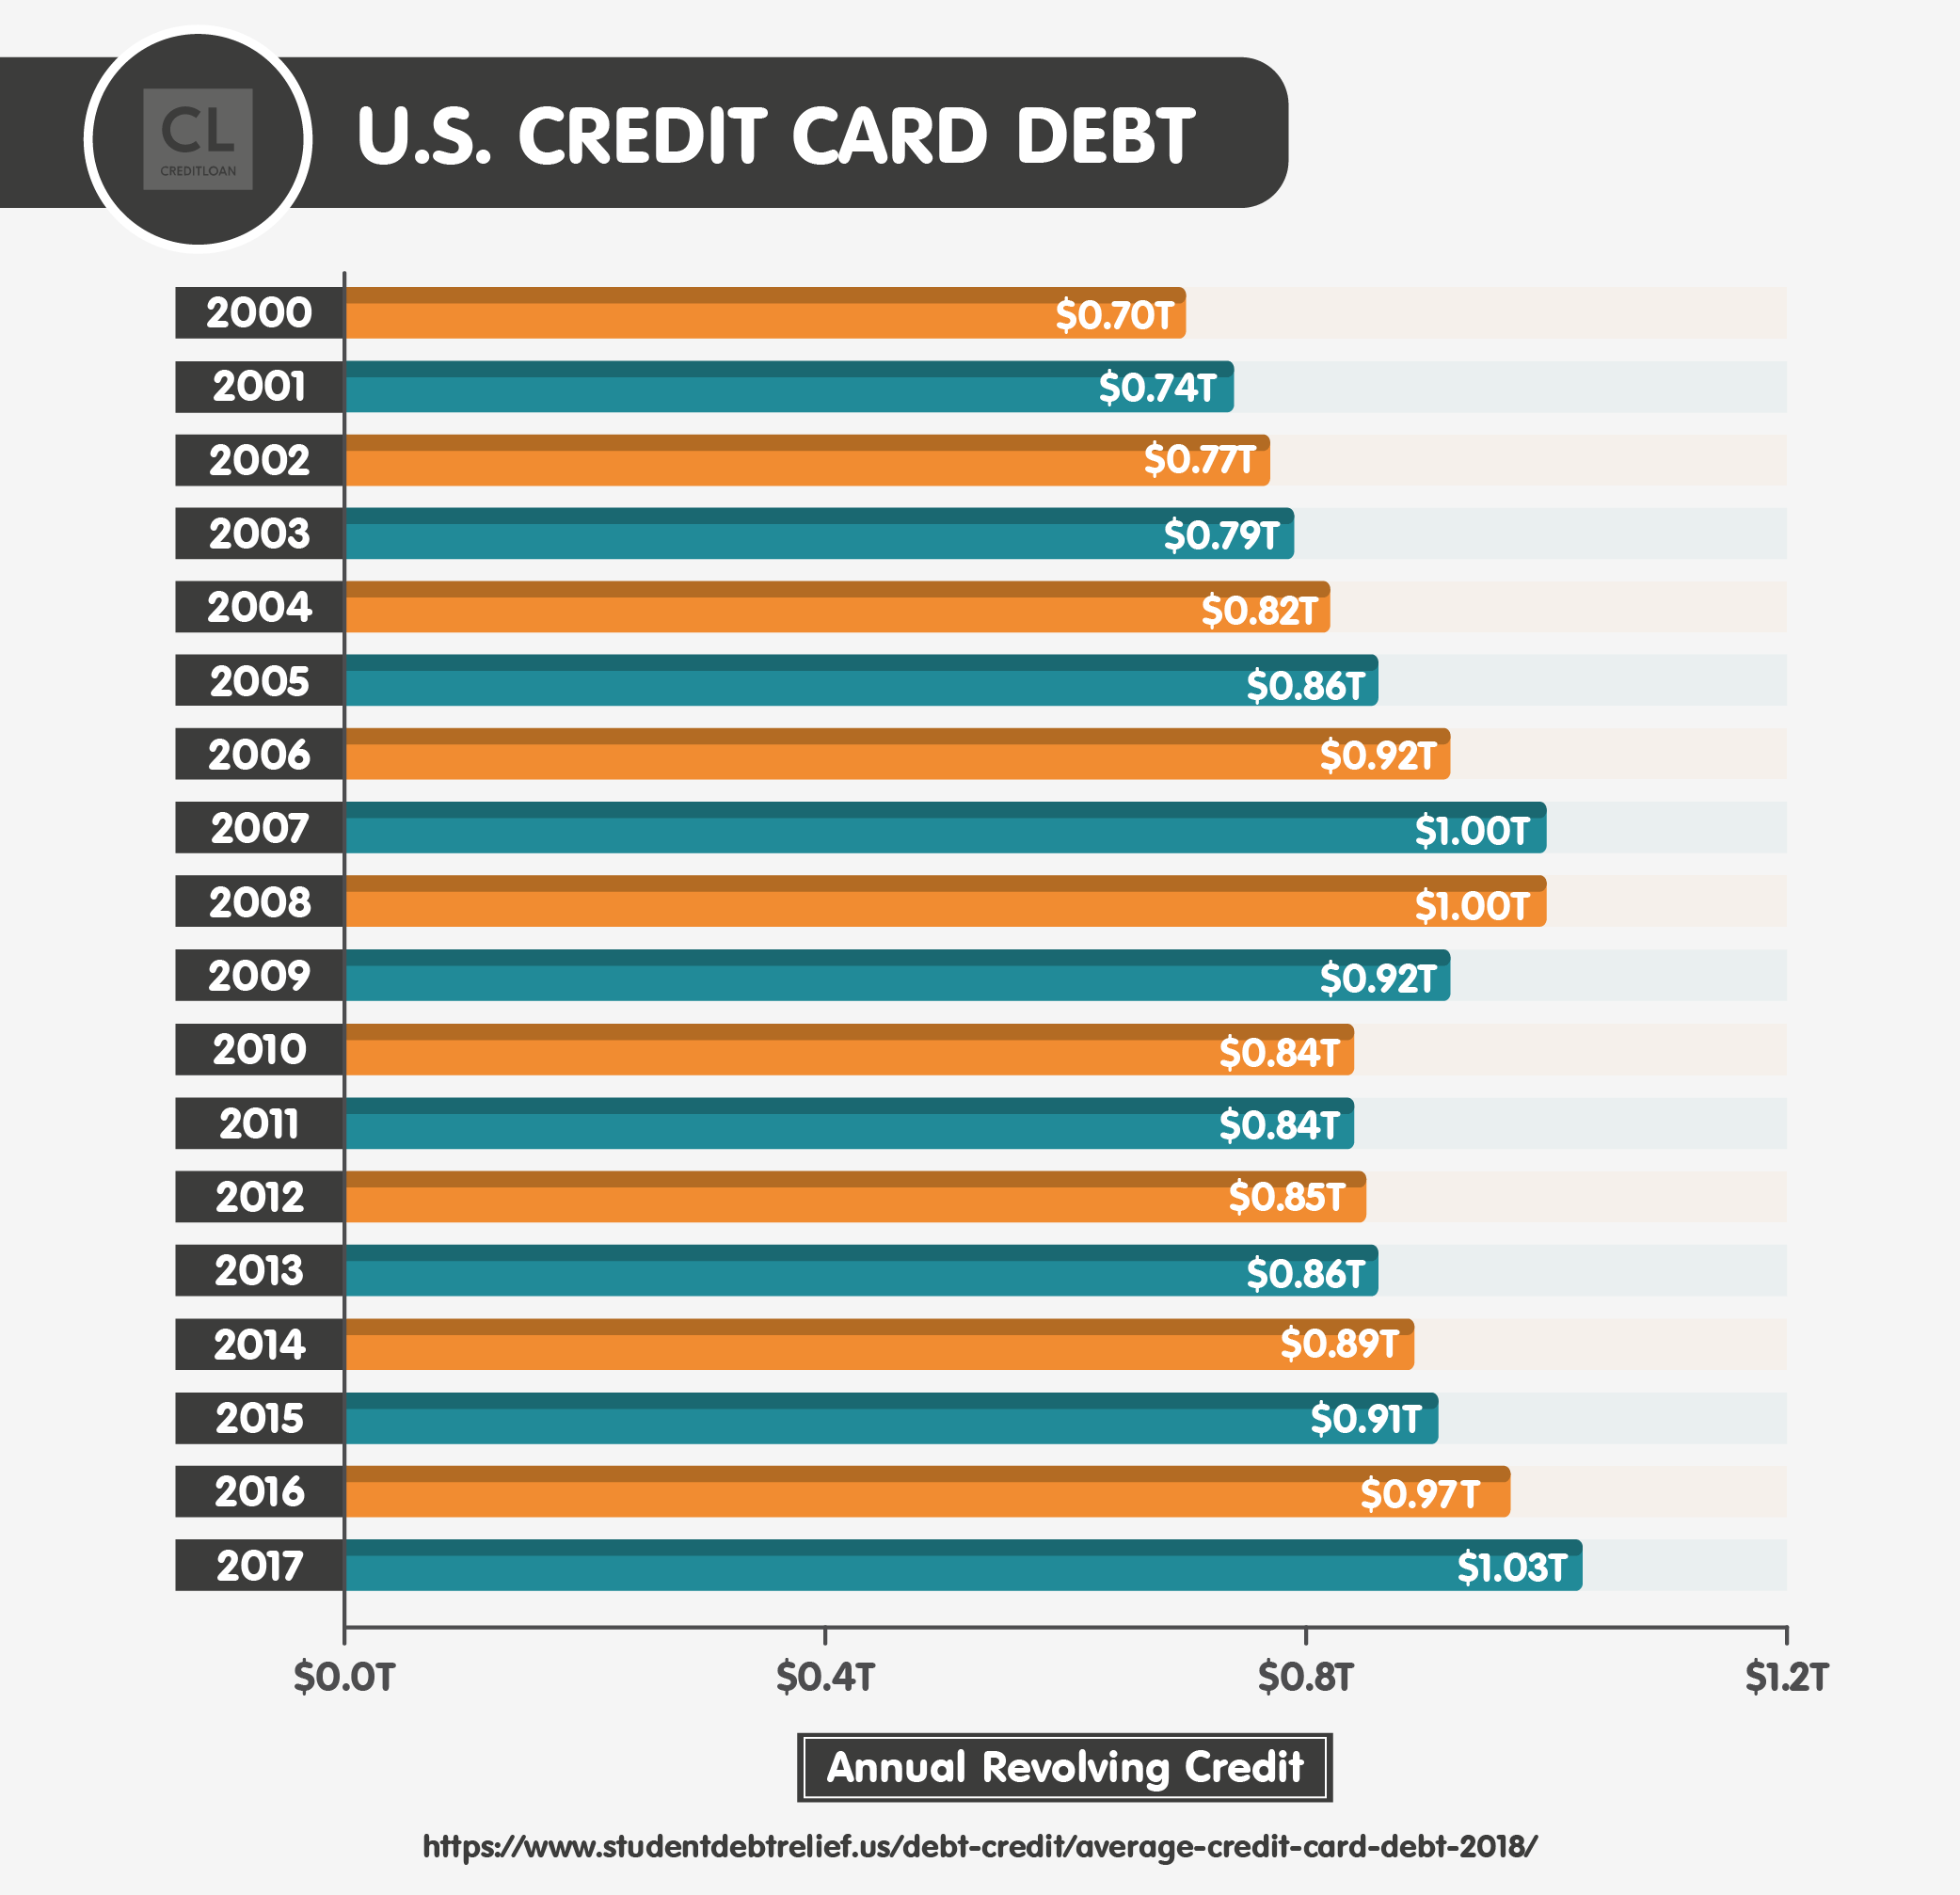 U.S. Credit Card Debt from 2000-2017